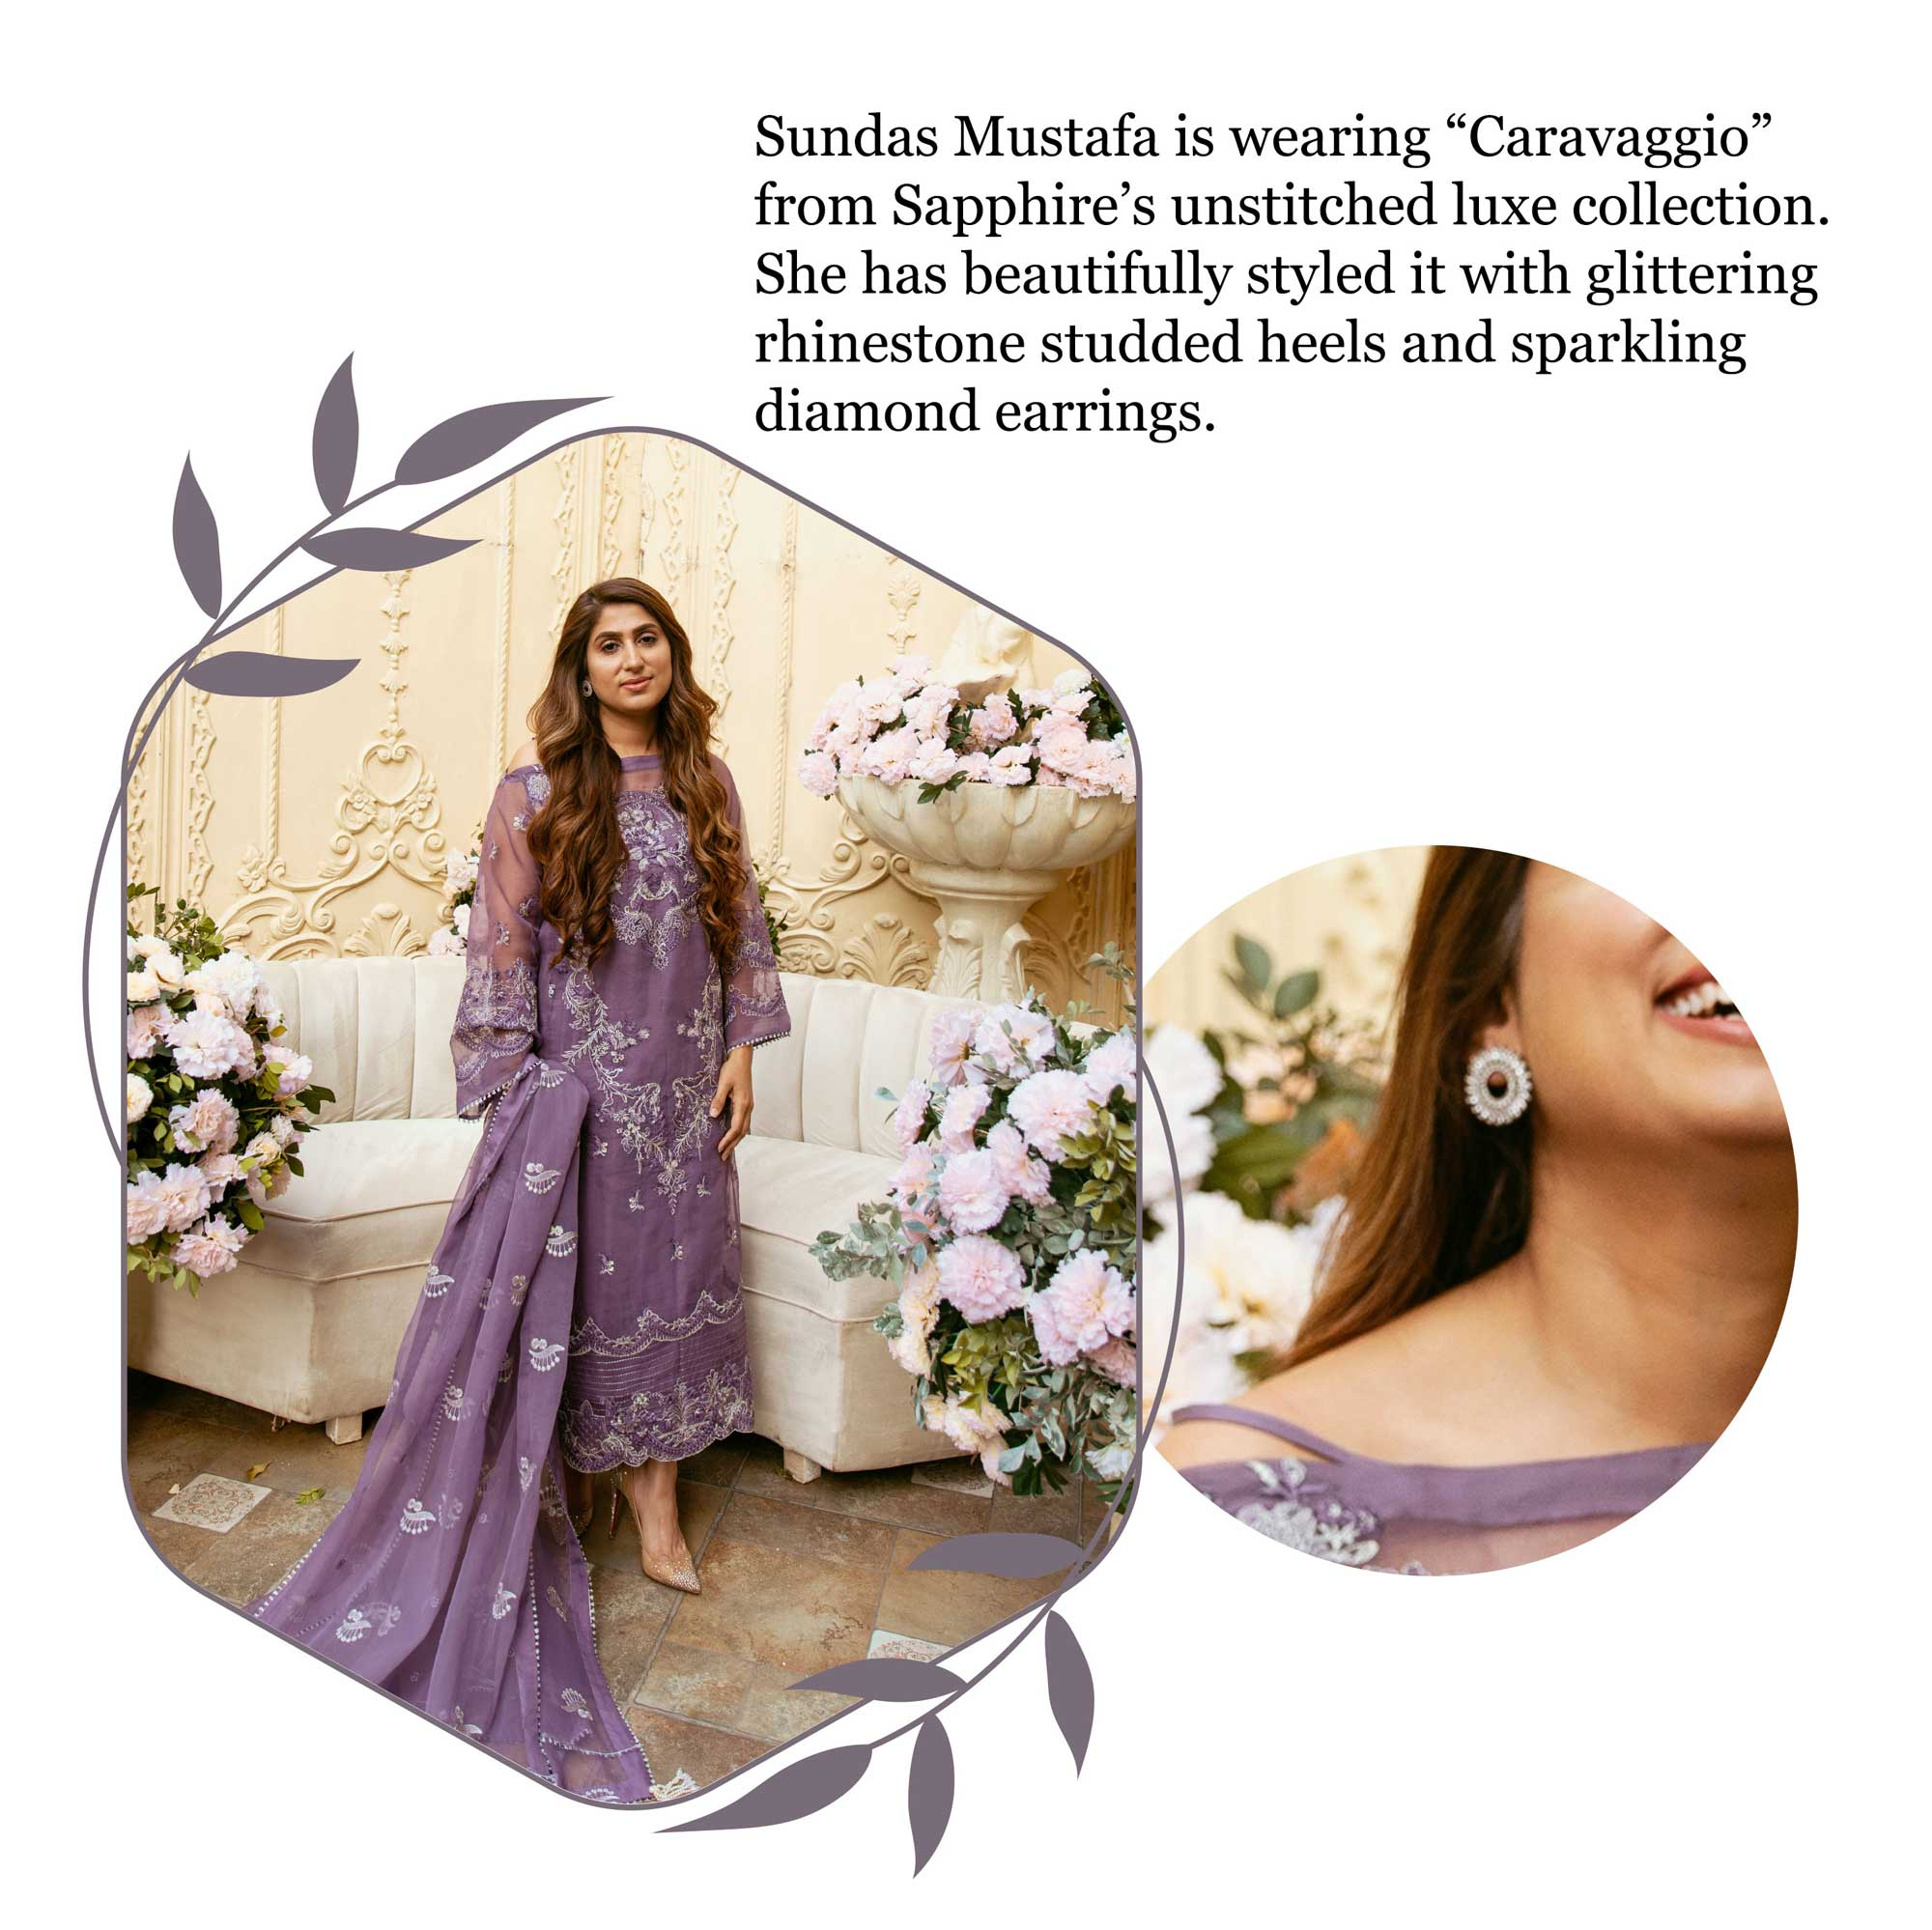 "Sundas Mustafa is wearing ""Caravaggio"" from Sapphire's unstitched luxe collection. She has beautifully styled it with glittering rhinestone studded heels and sparkling diamond earrings."